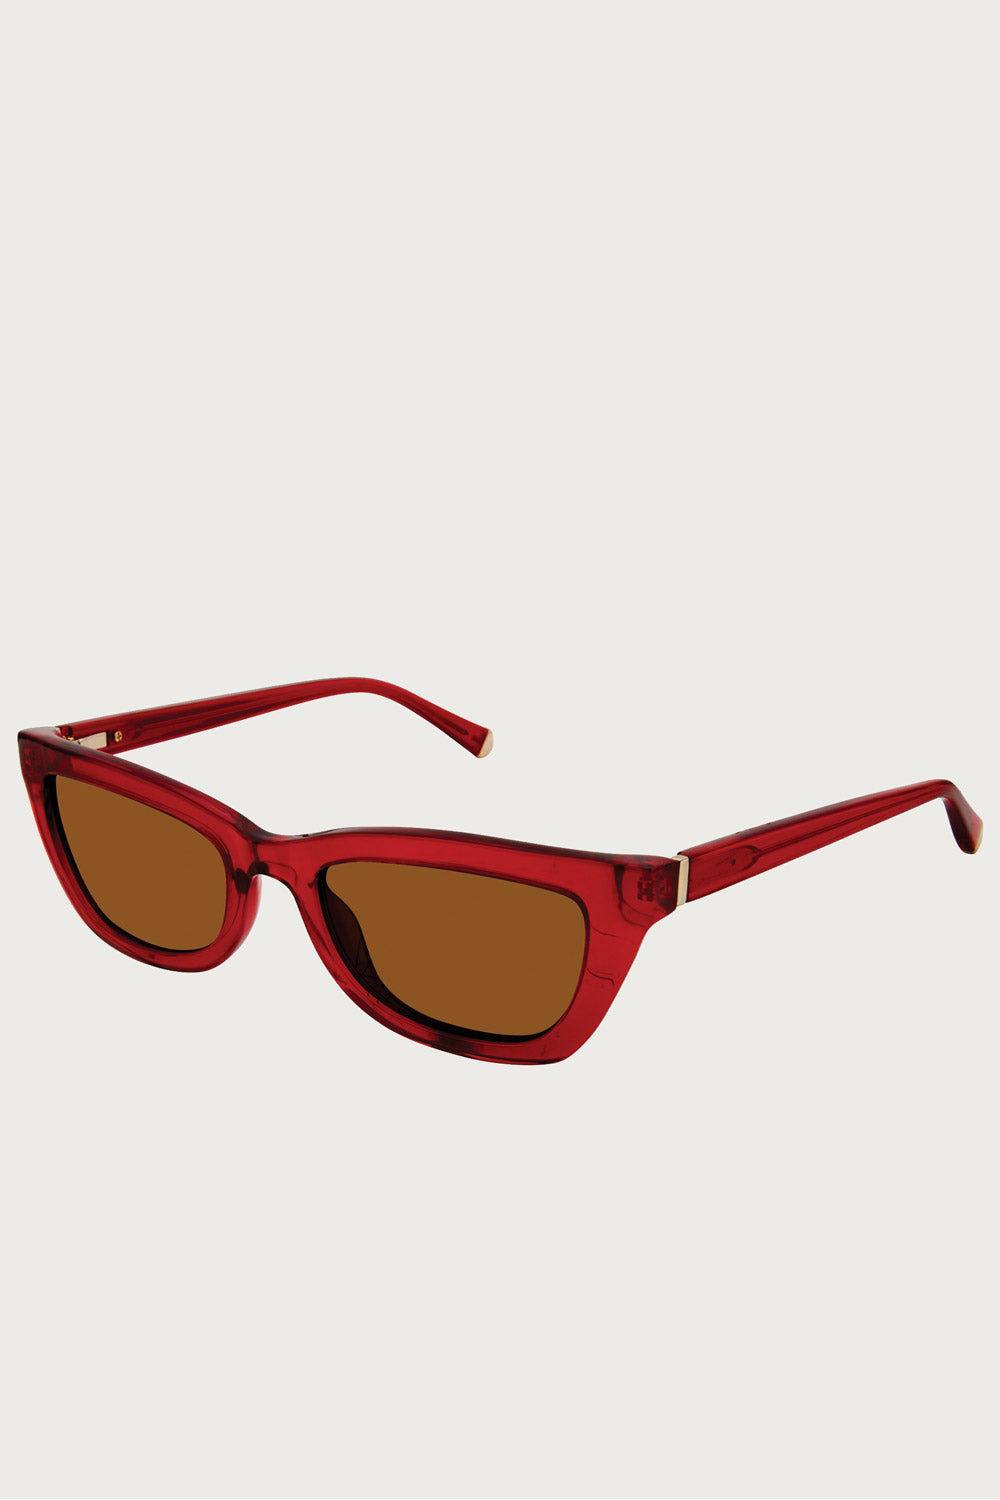 Katia Sunglasses in Red